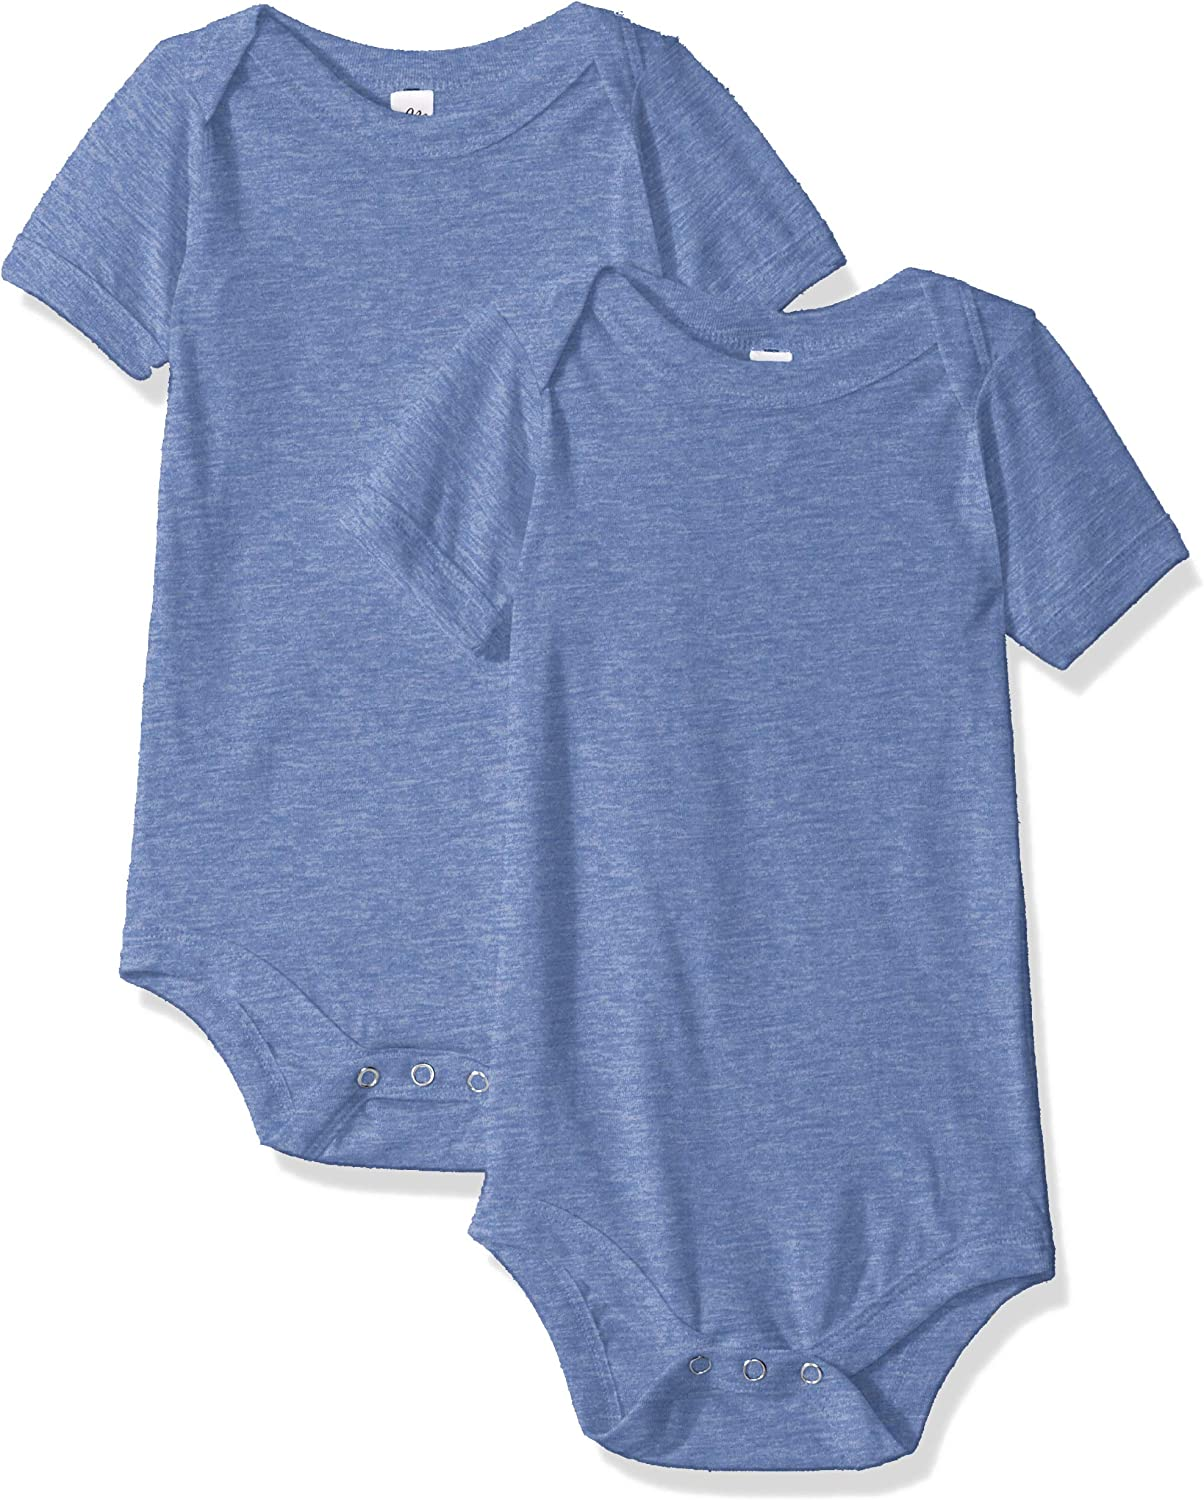 Marky G Apparel unisex-baby Triblend Short-sleeve One-piece - 2 Pack